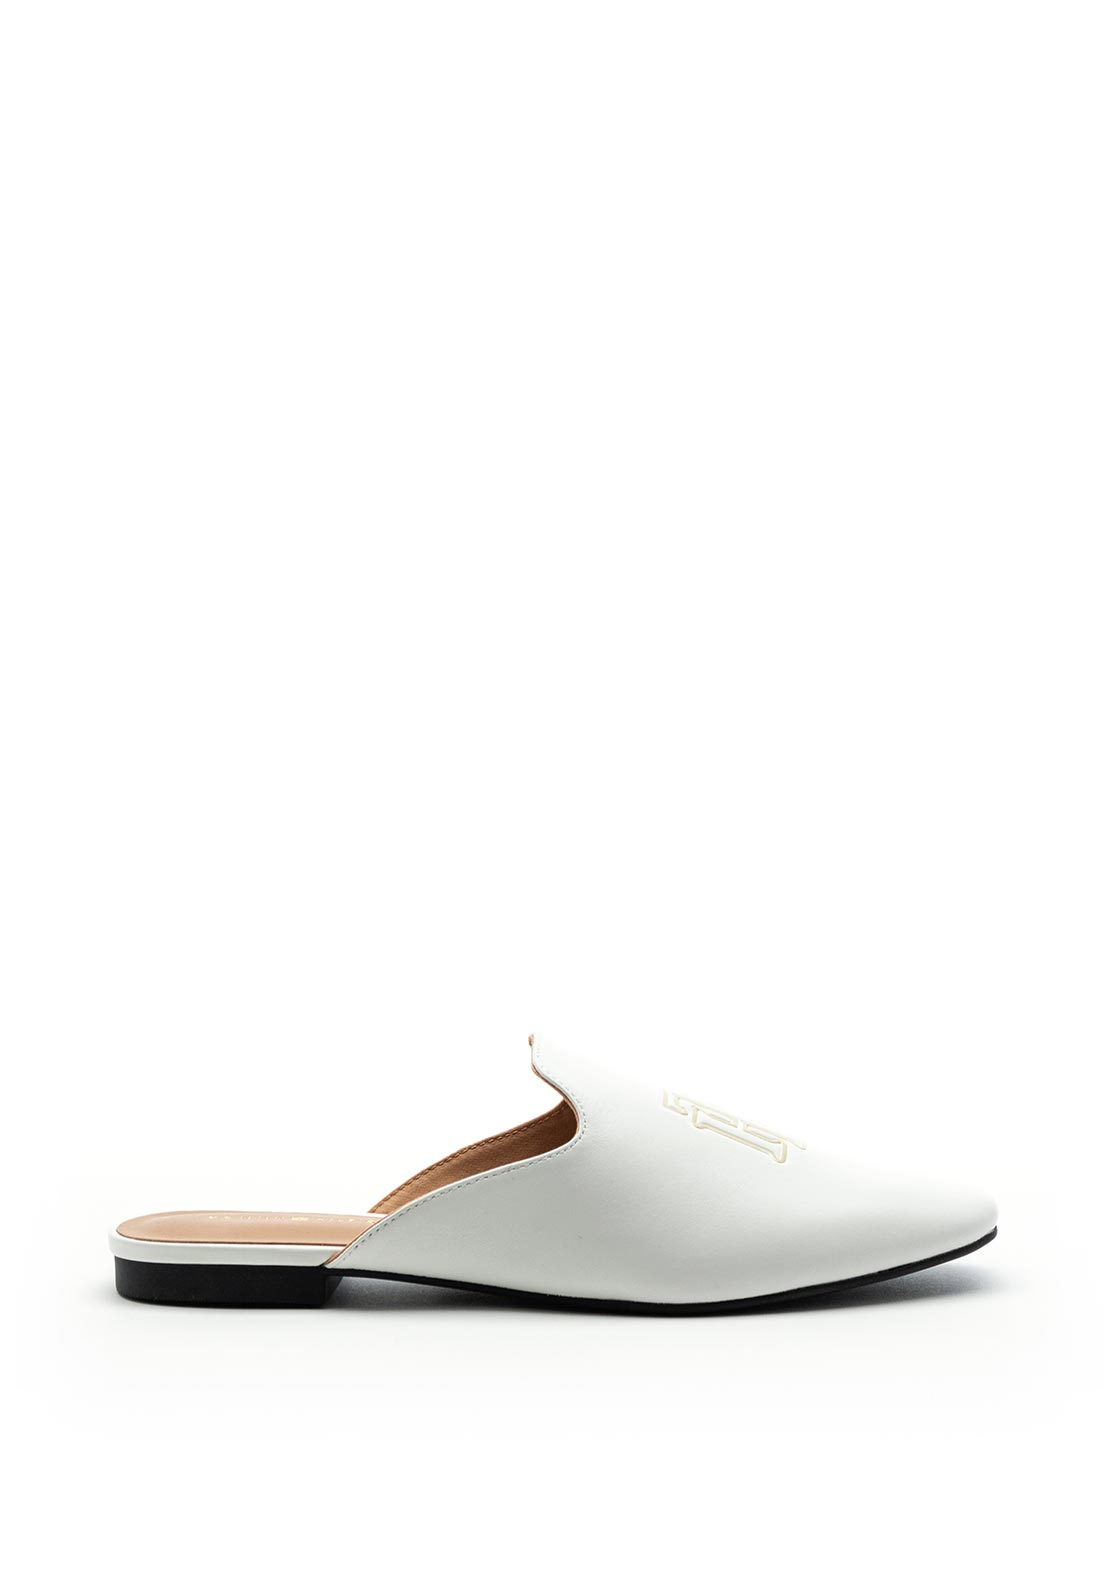 Tommy Hilfiger Womens Monogram Leather Flat Mules, White